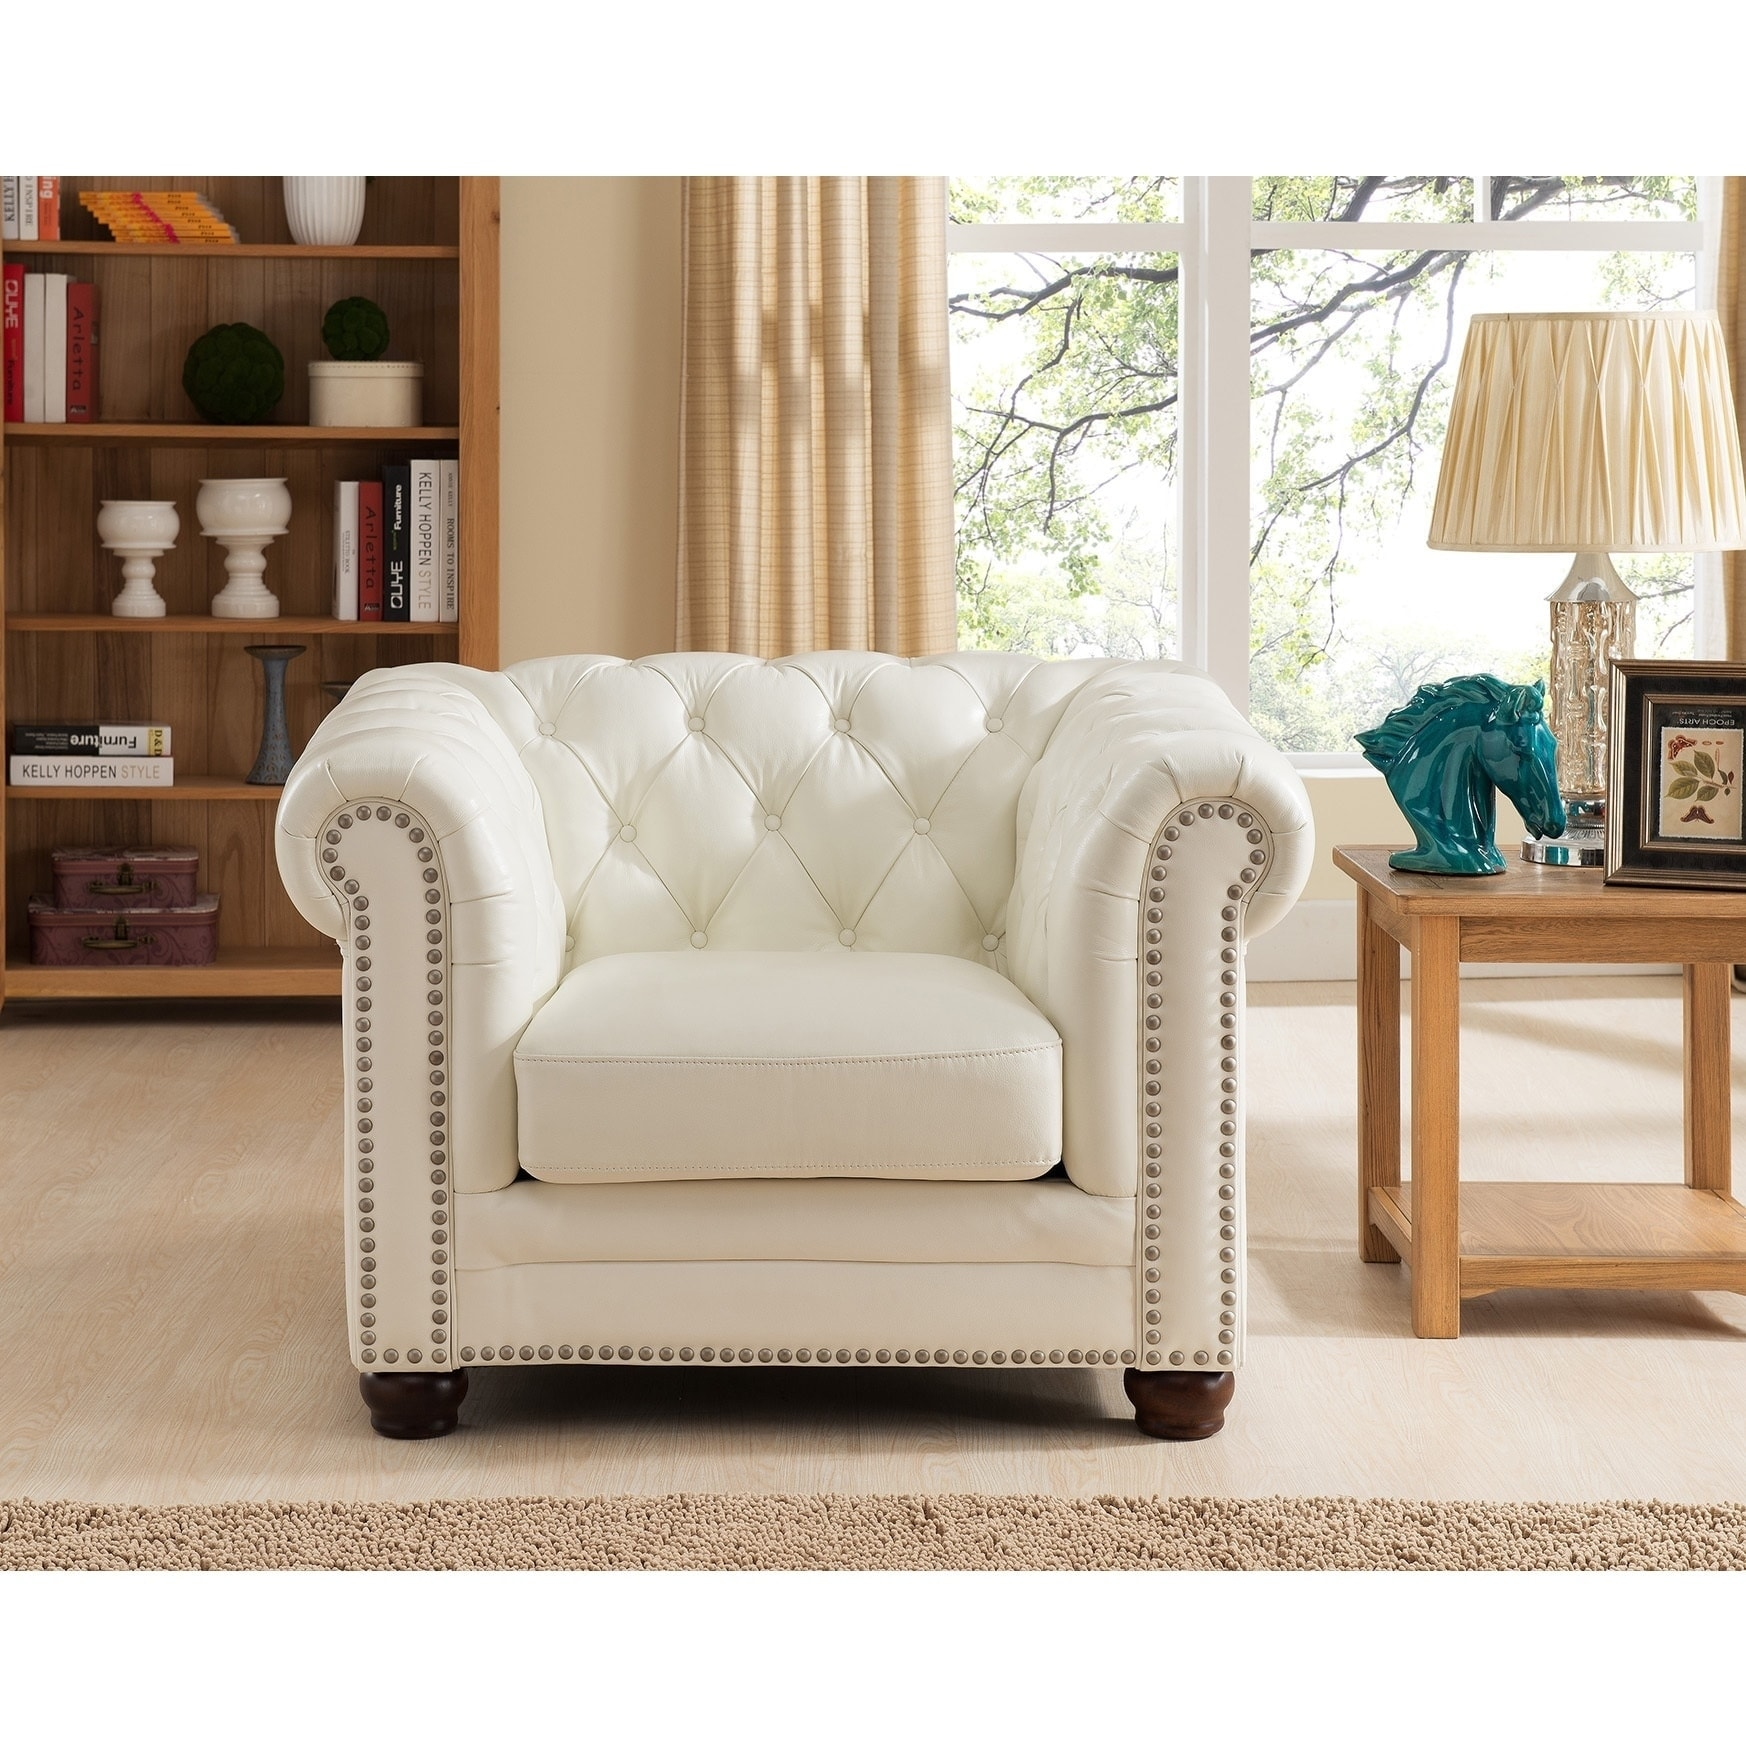 Nashville White Leather Chair